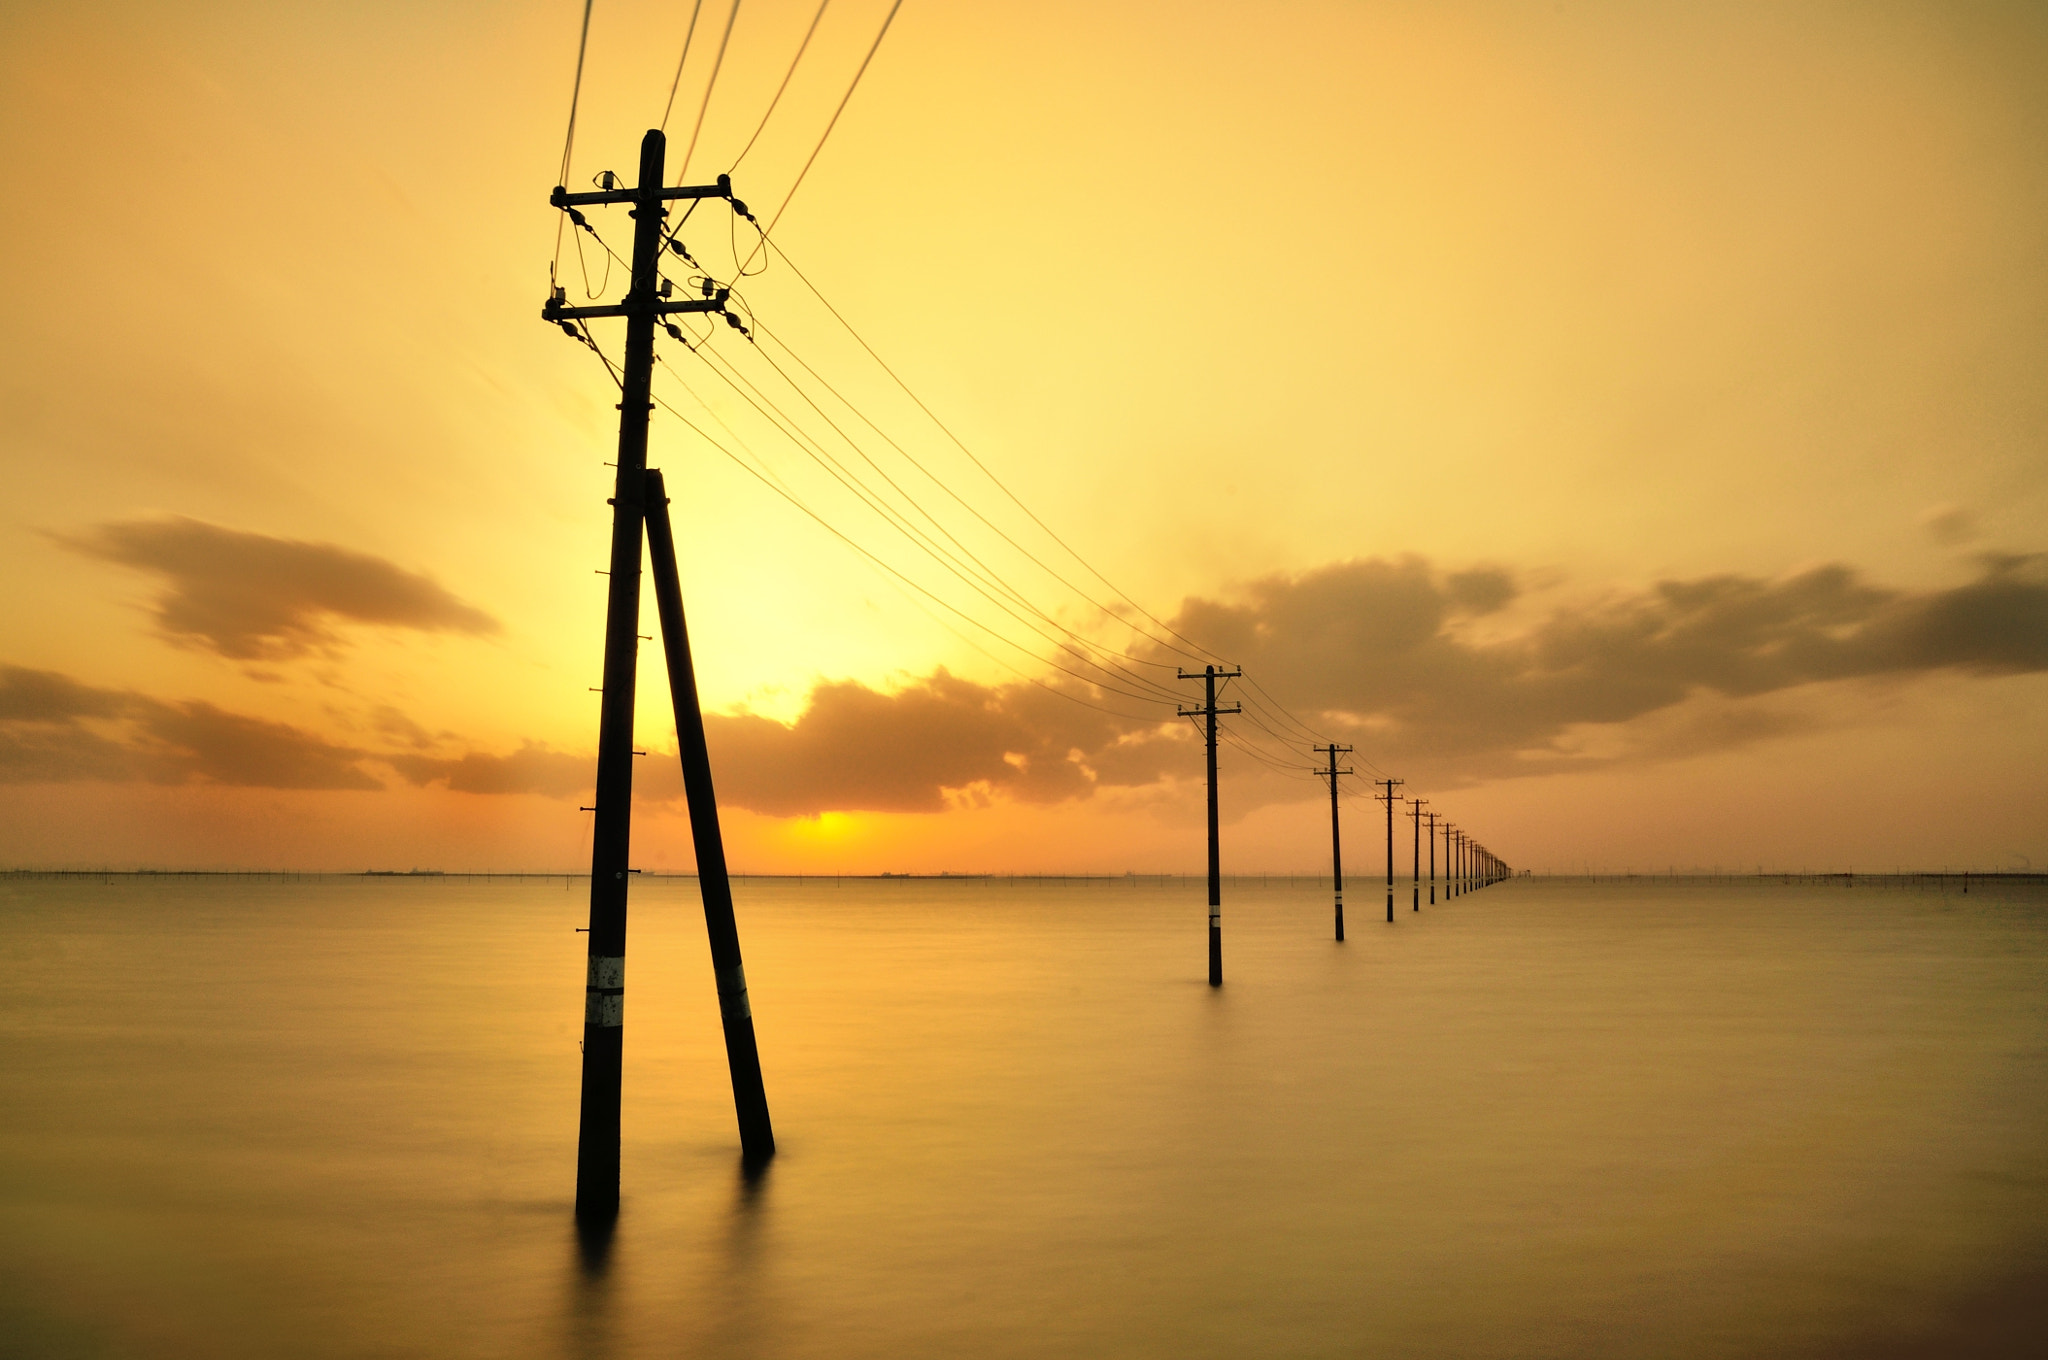 Photograph Utility Pole in the sea 2 by nao sakaki on 500px